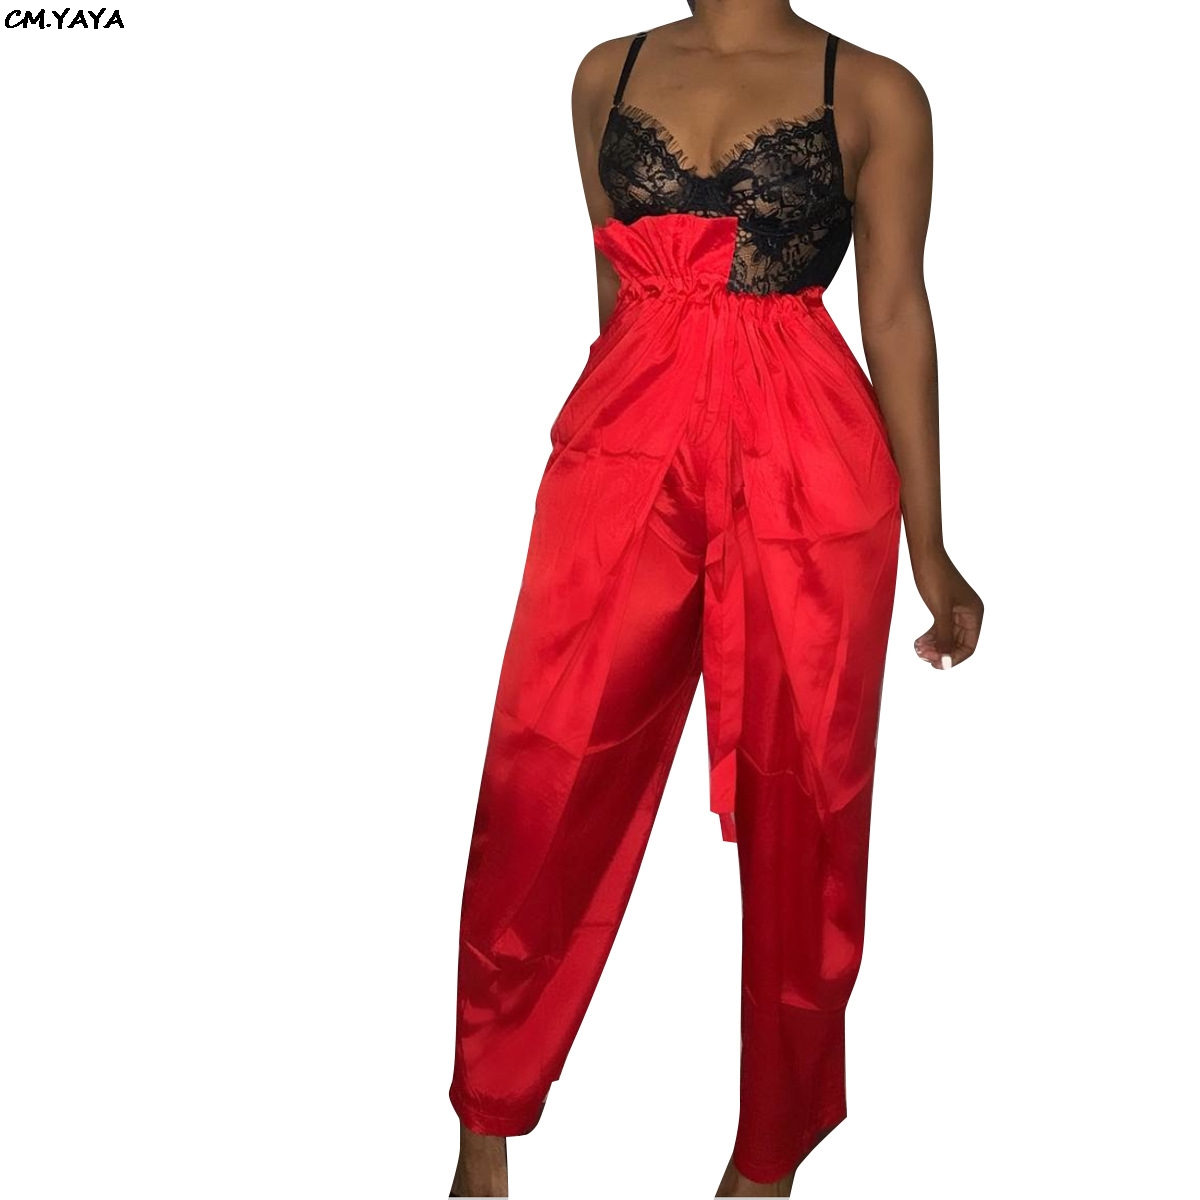 Sexy Pants Women Active-Wear Long-Trousers Ruffles Vintage Black High-Waist New Red Elastic